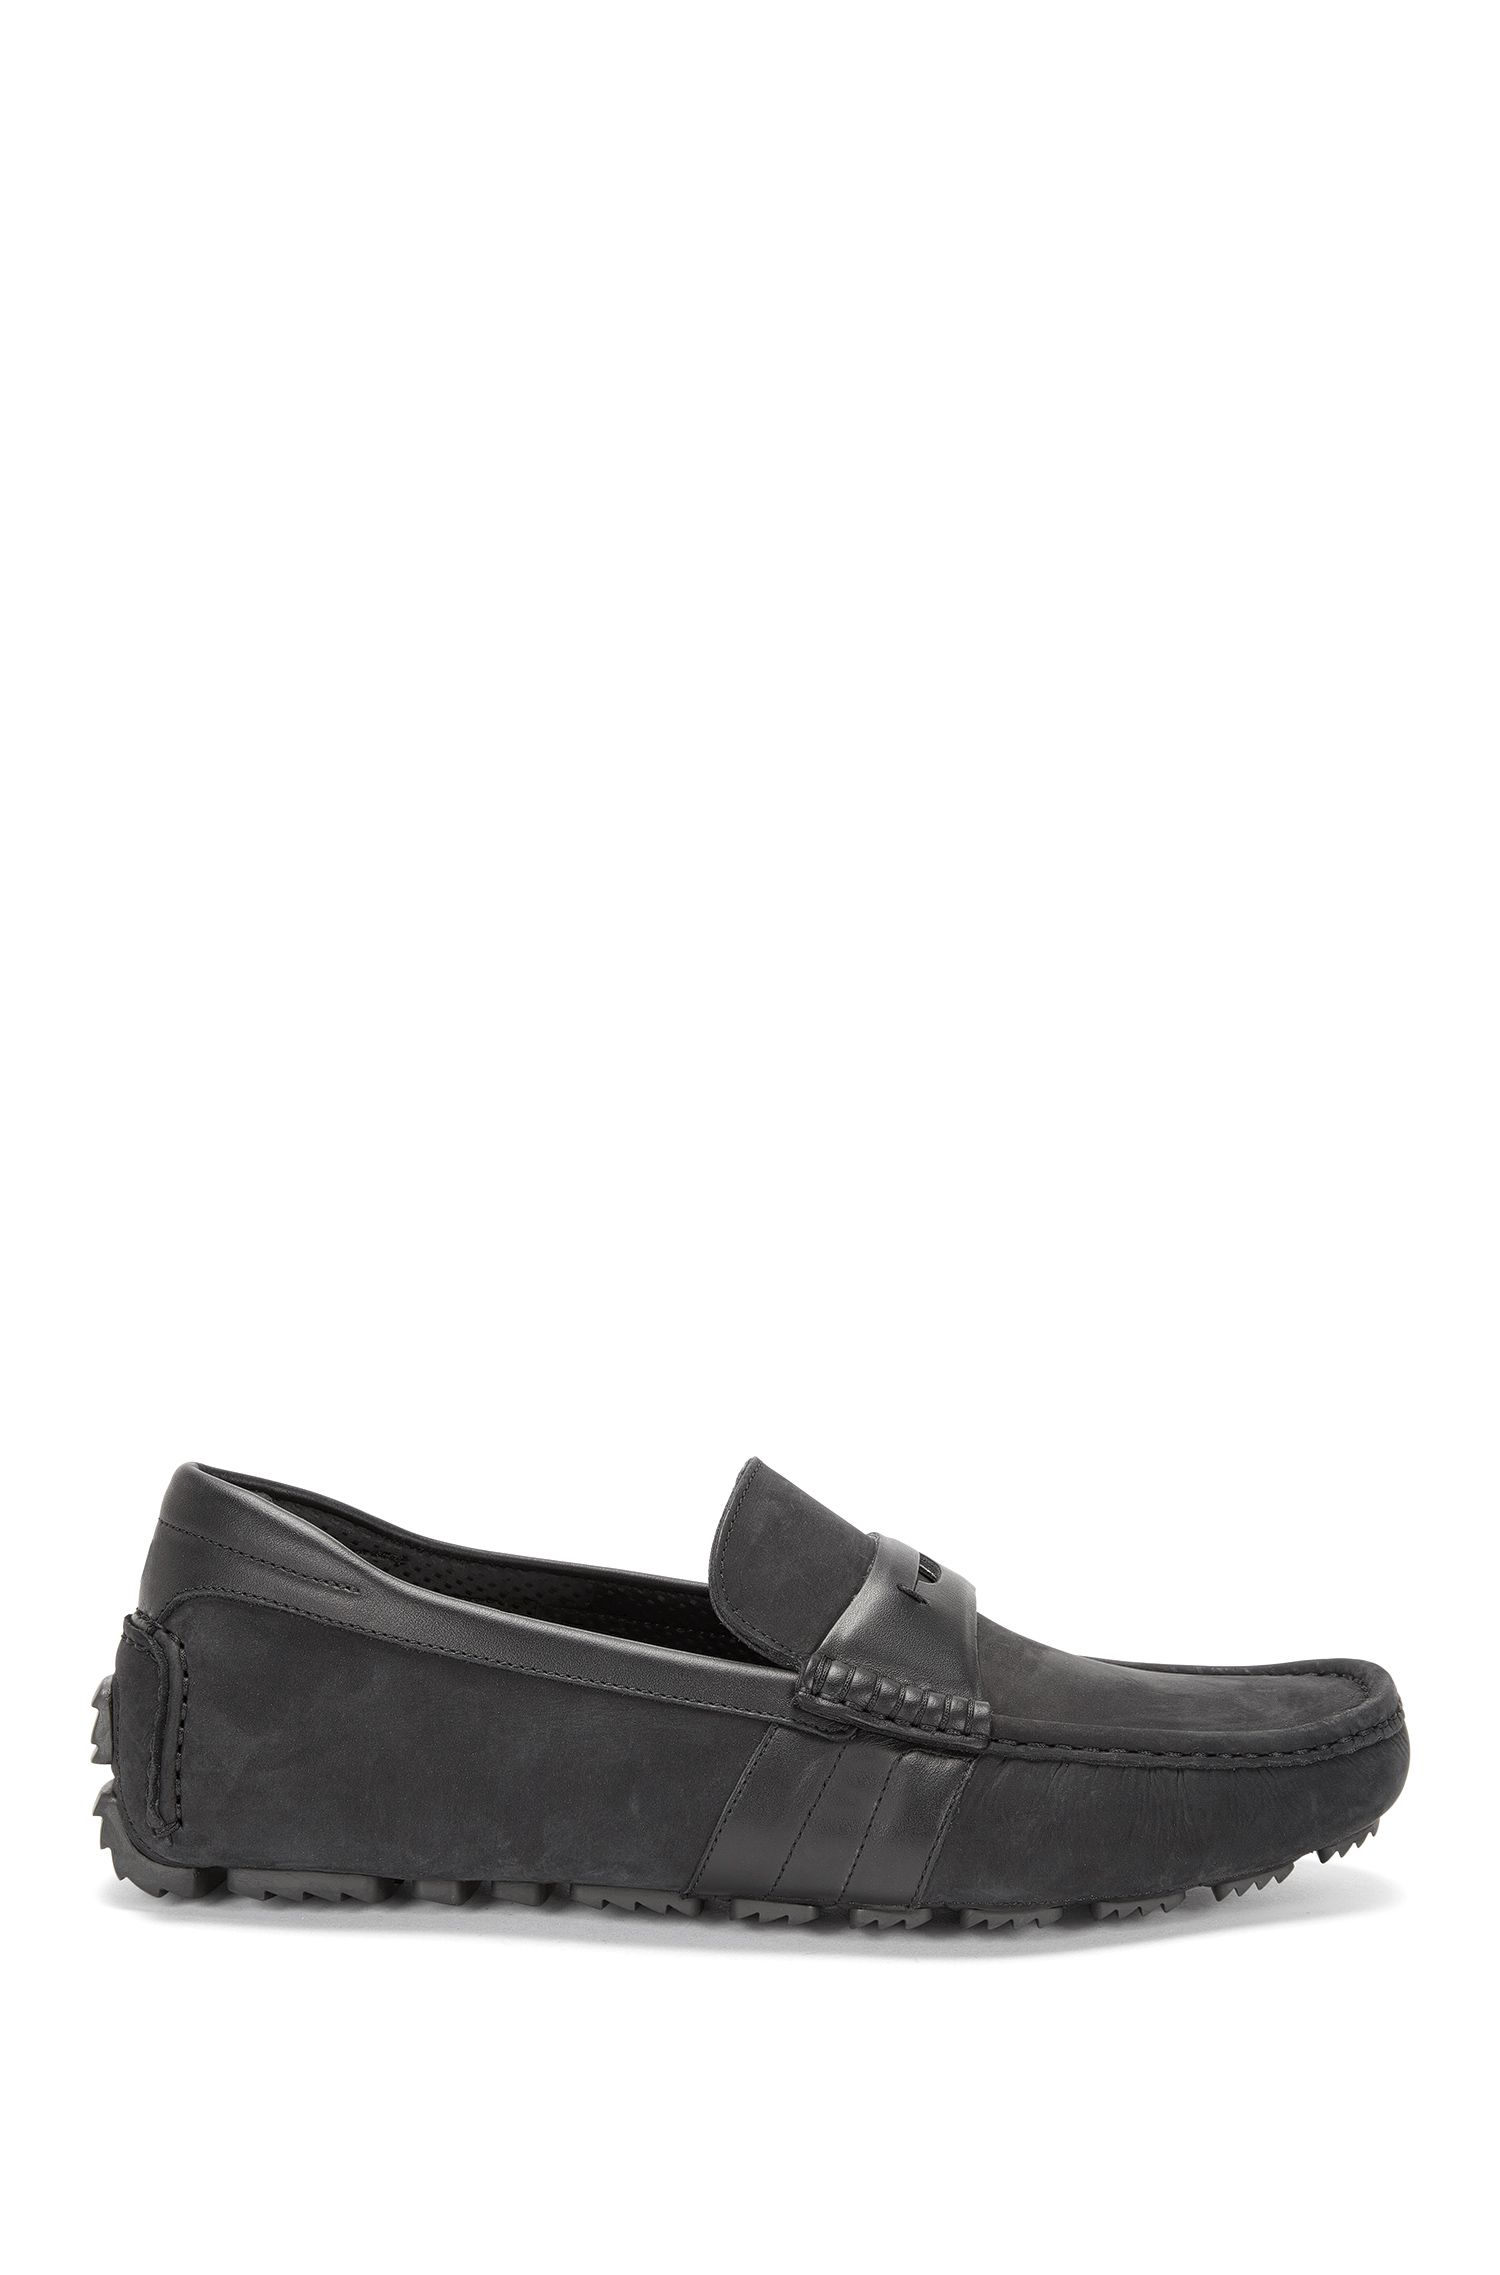 Italian Suede Driving Loafer | Driver Mocc Nult